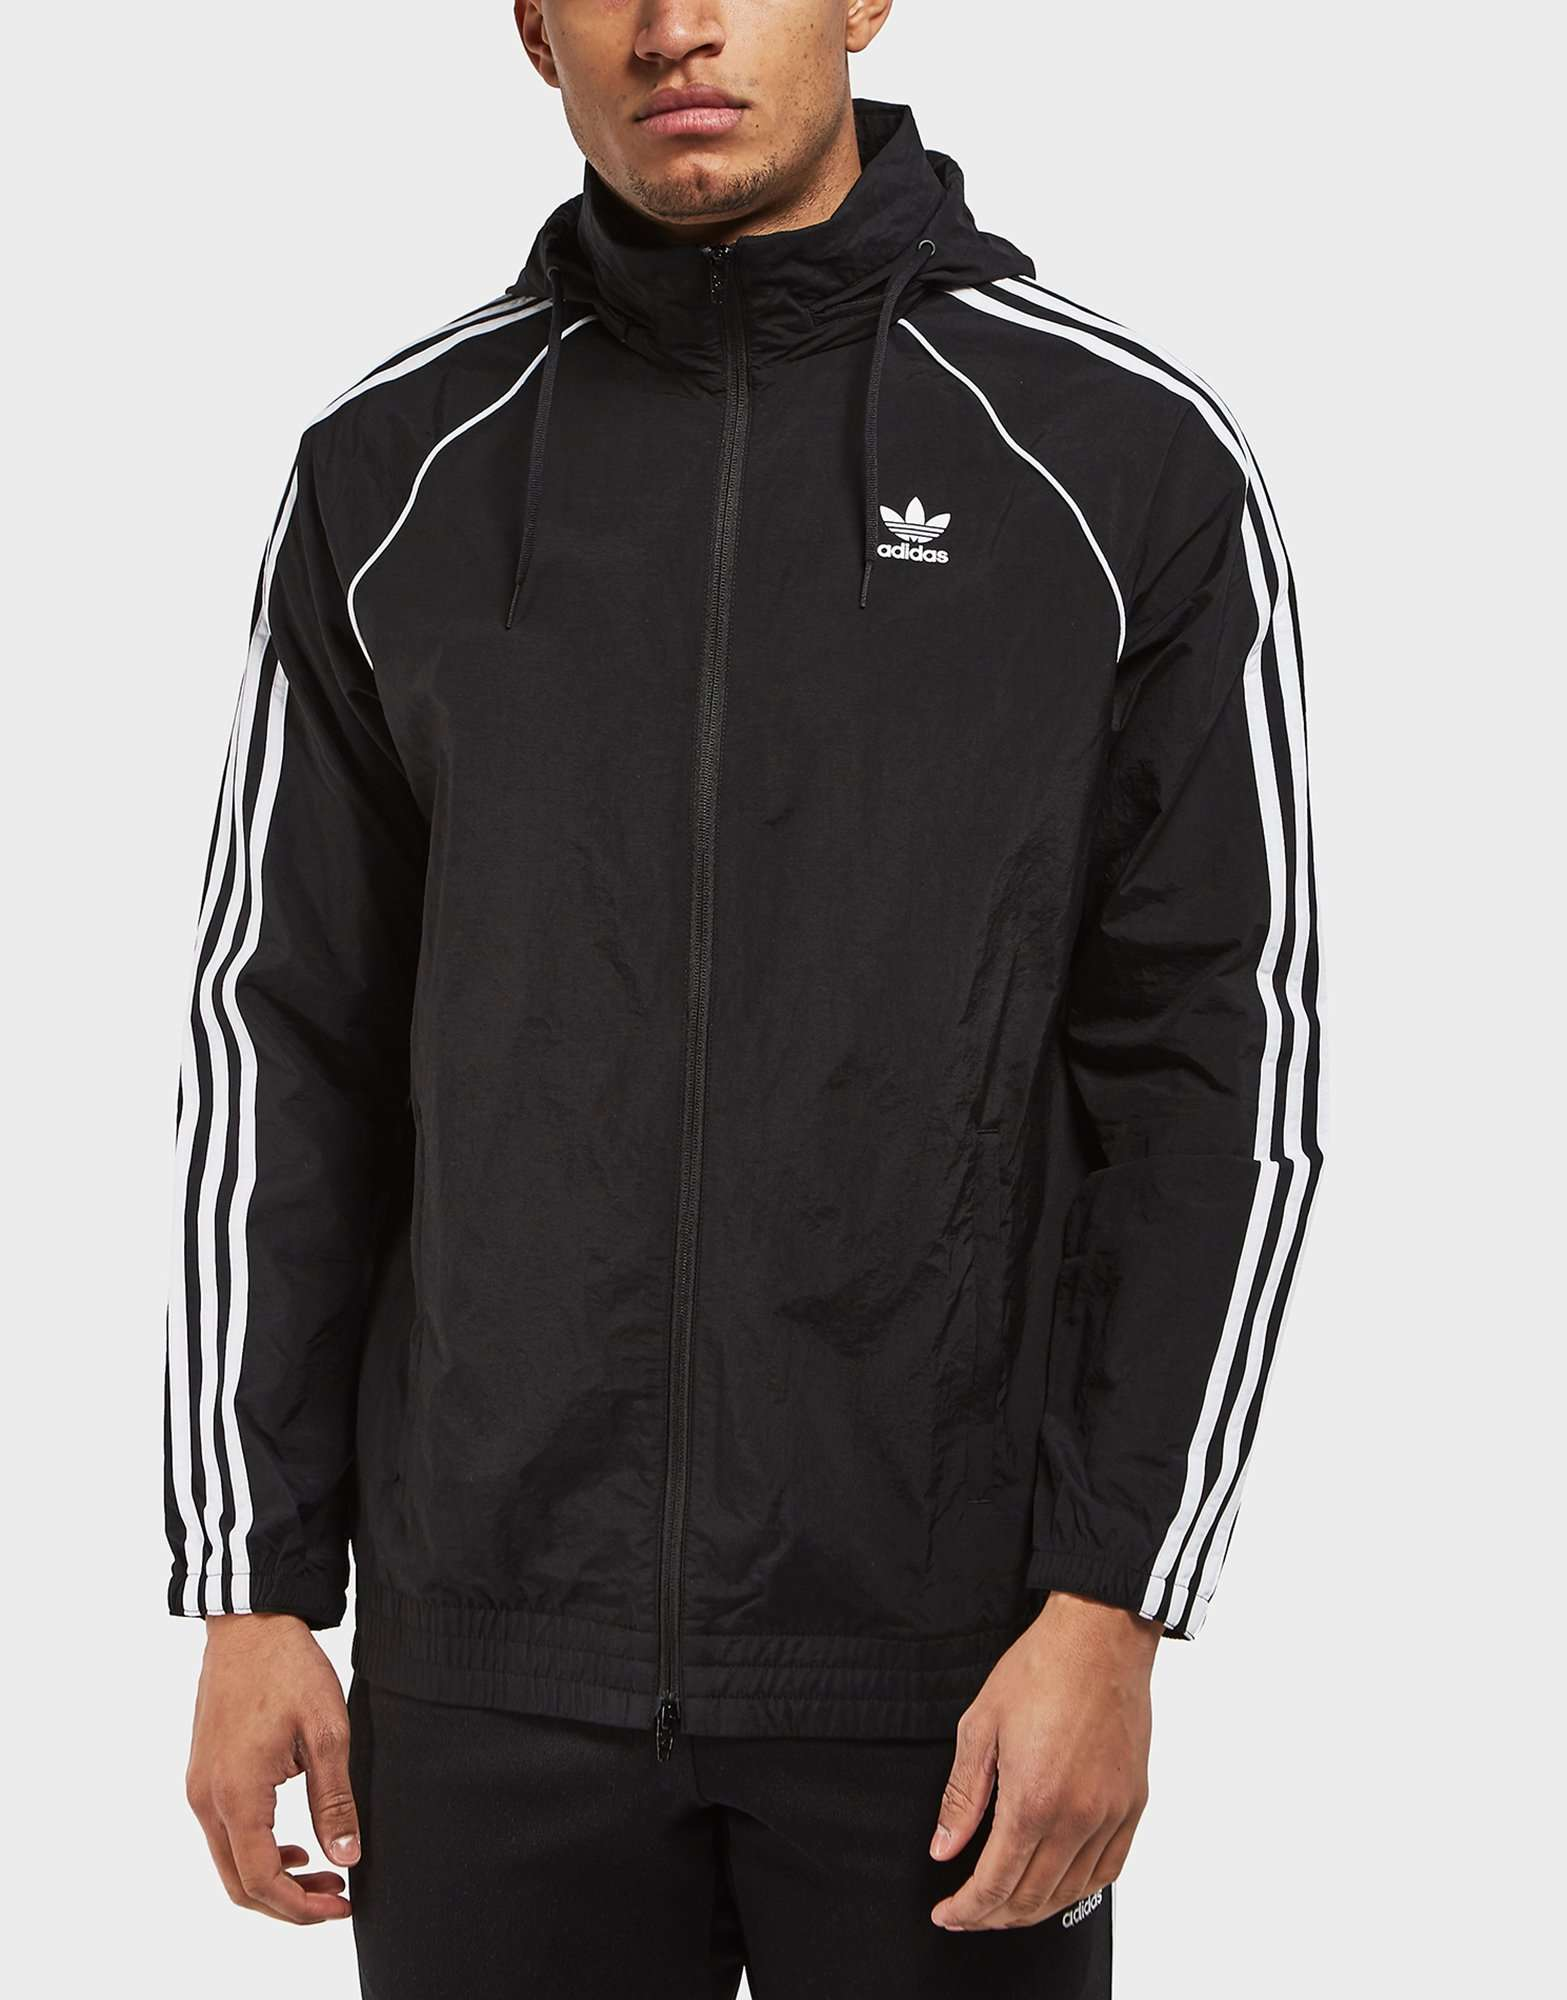 Adidas Originals Clothing Mens Tracksuits More Scotts Menswear Jaket Grab Bike Sweater Hoodie Premium Superstar Lightweight Windbreaker